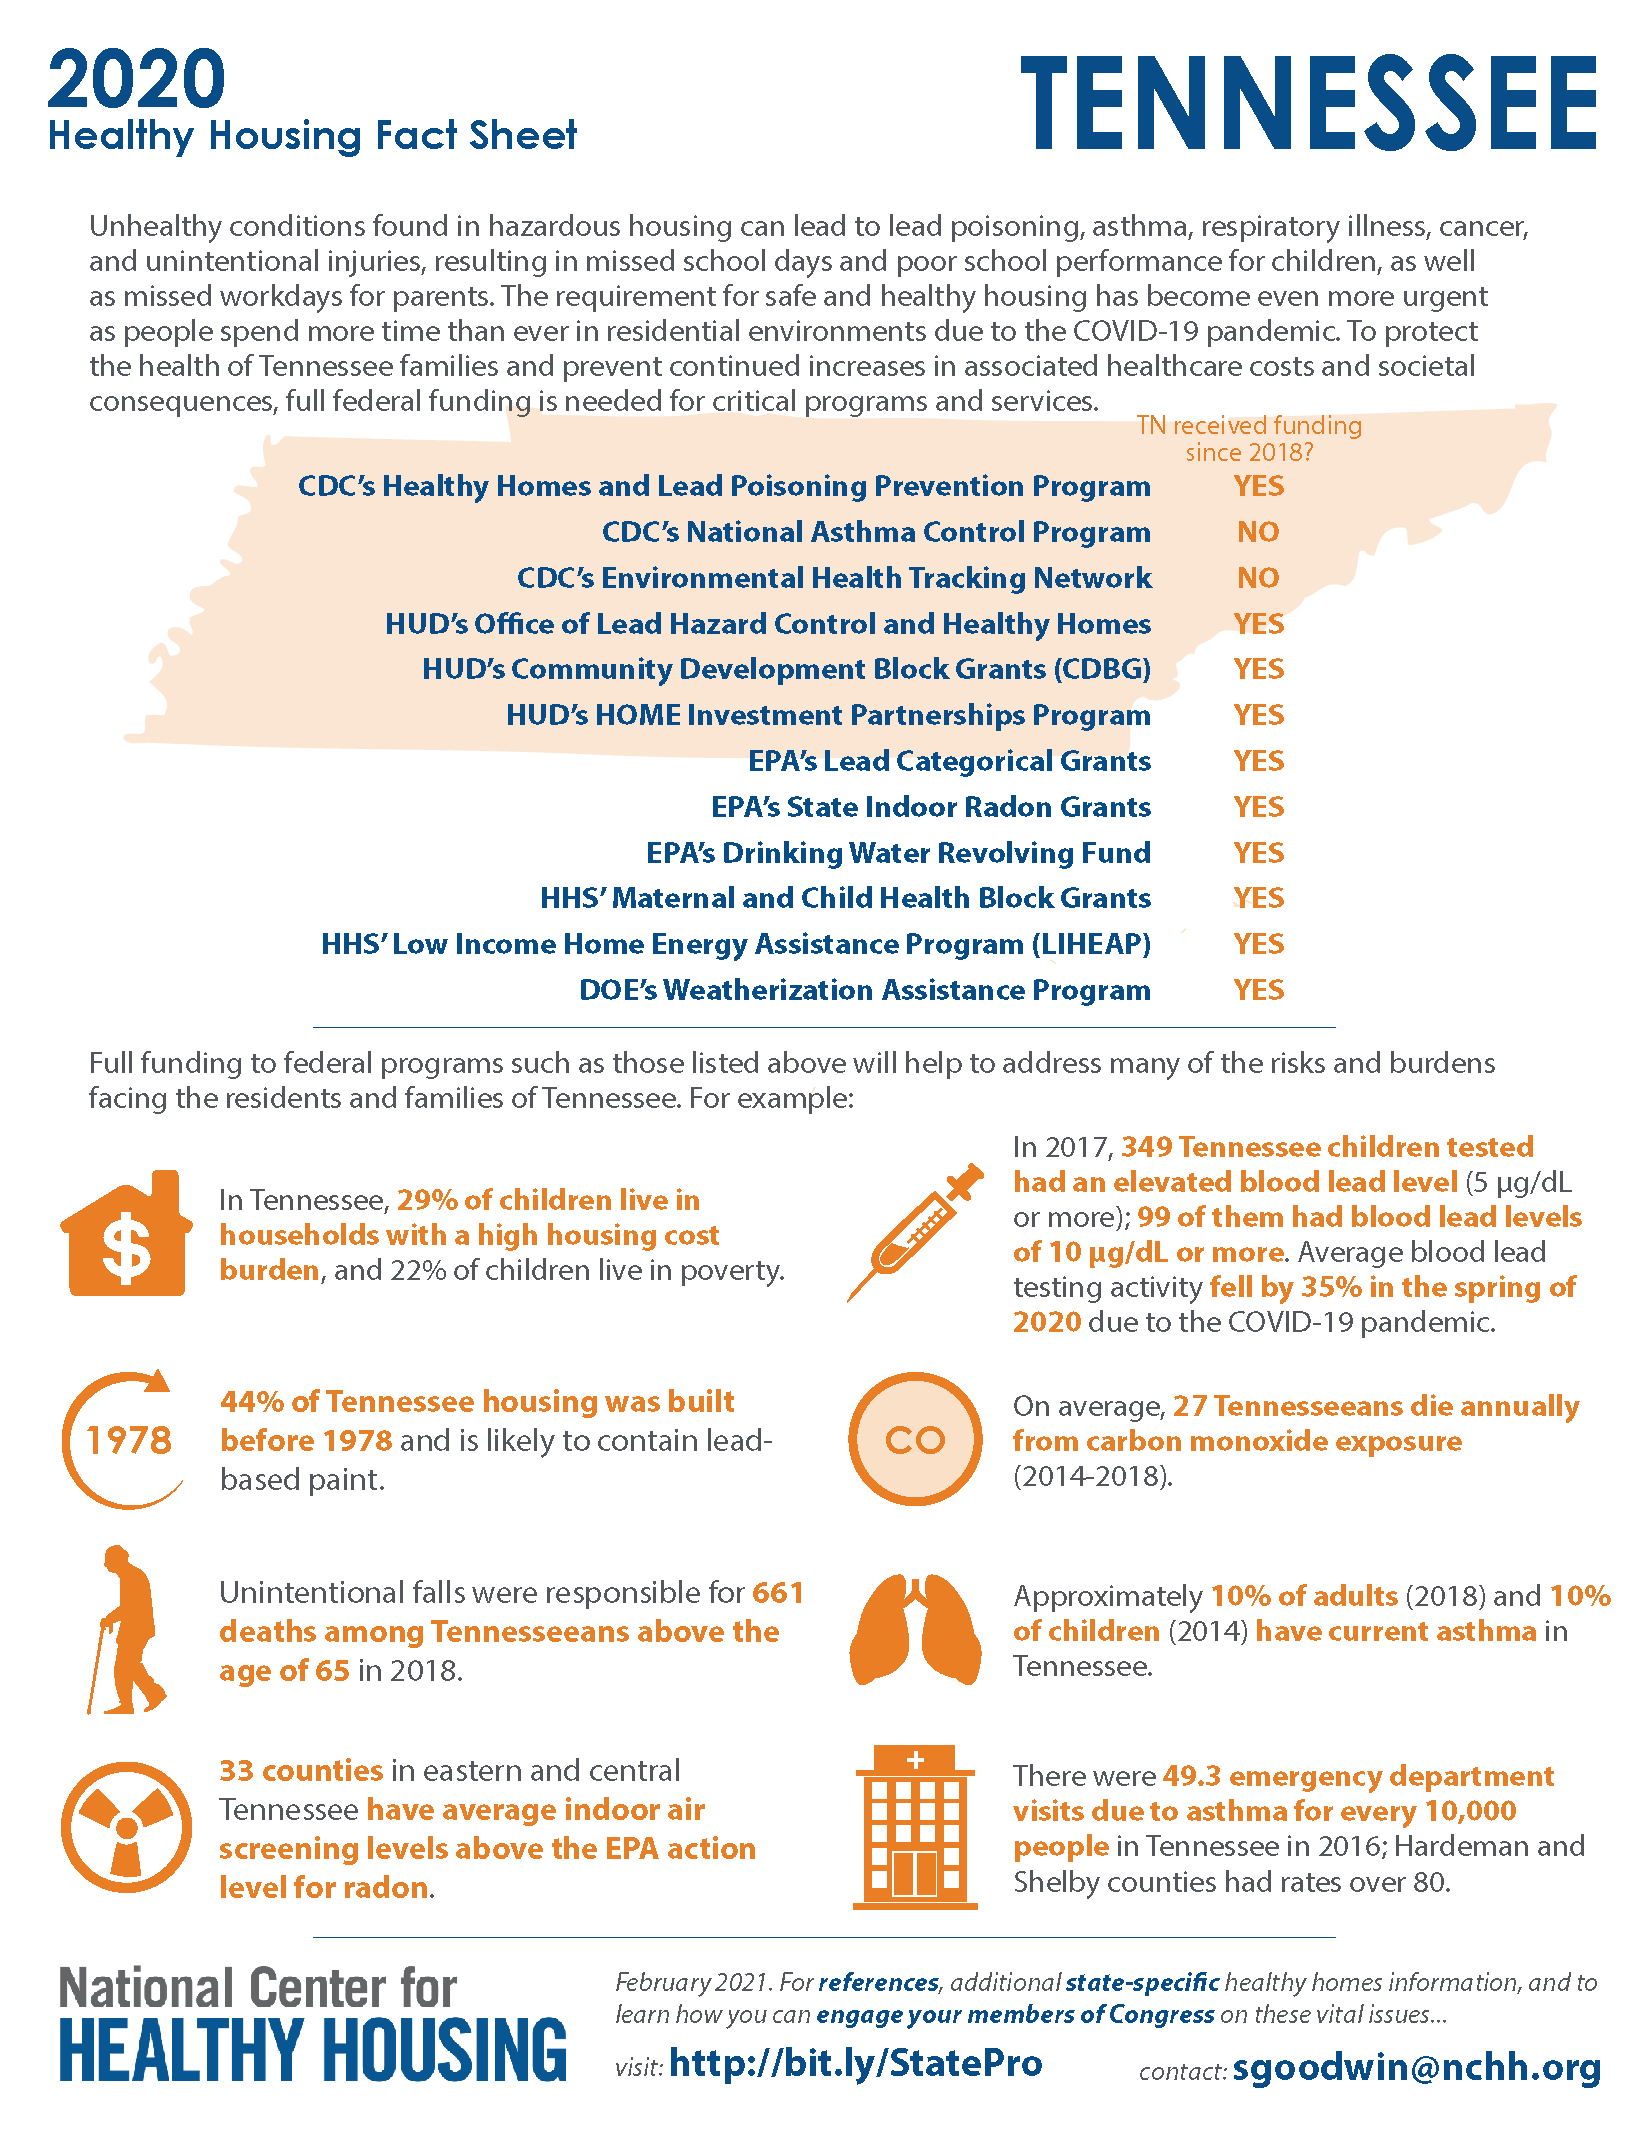 Healthy Housing Fact Sheet - Tennessee 2020